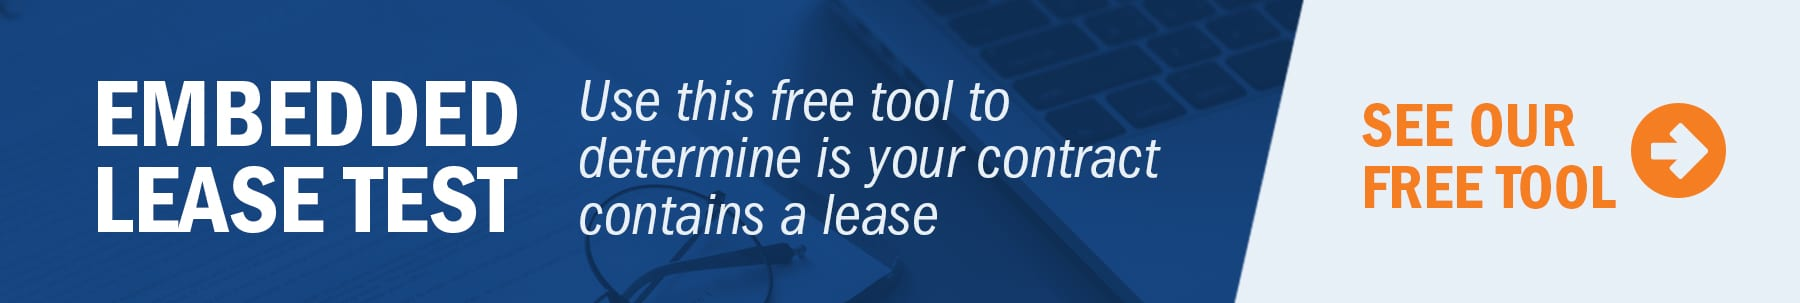 Embedded Lease Tool